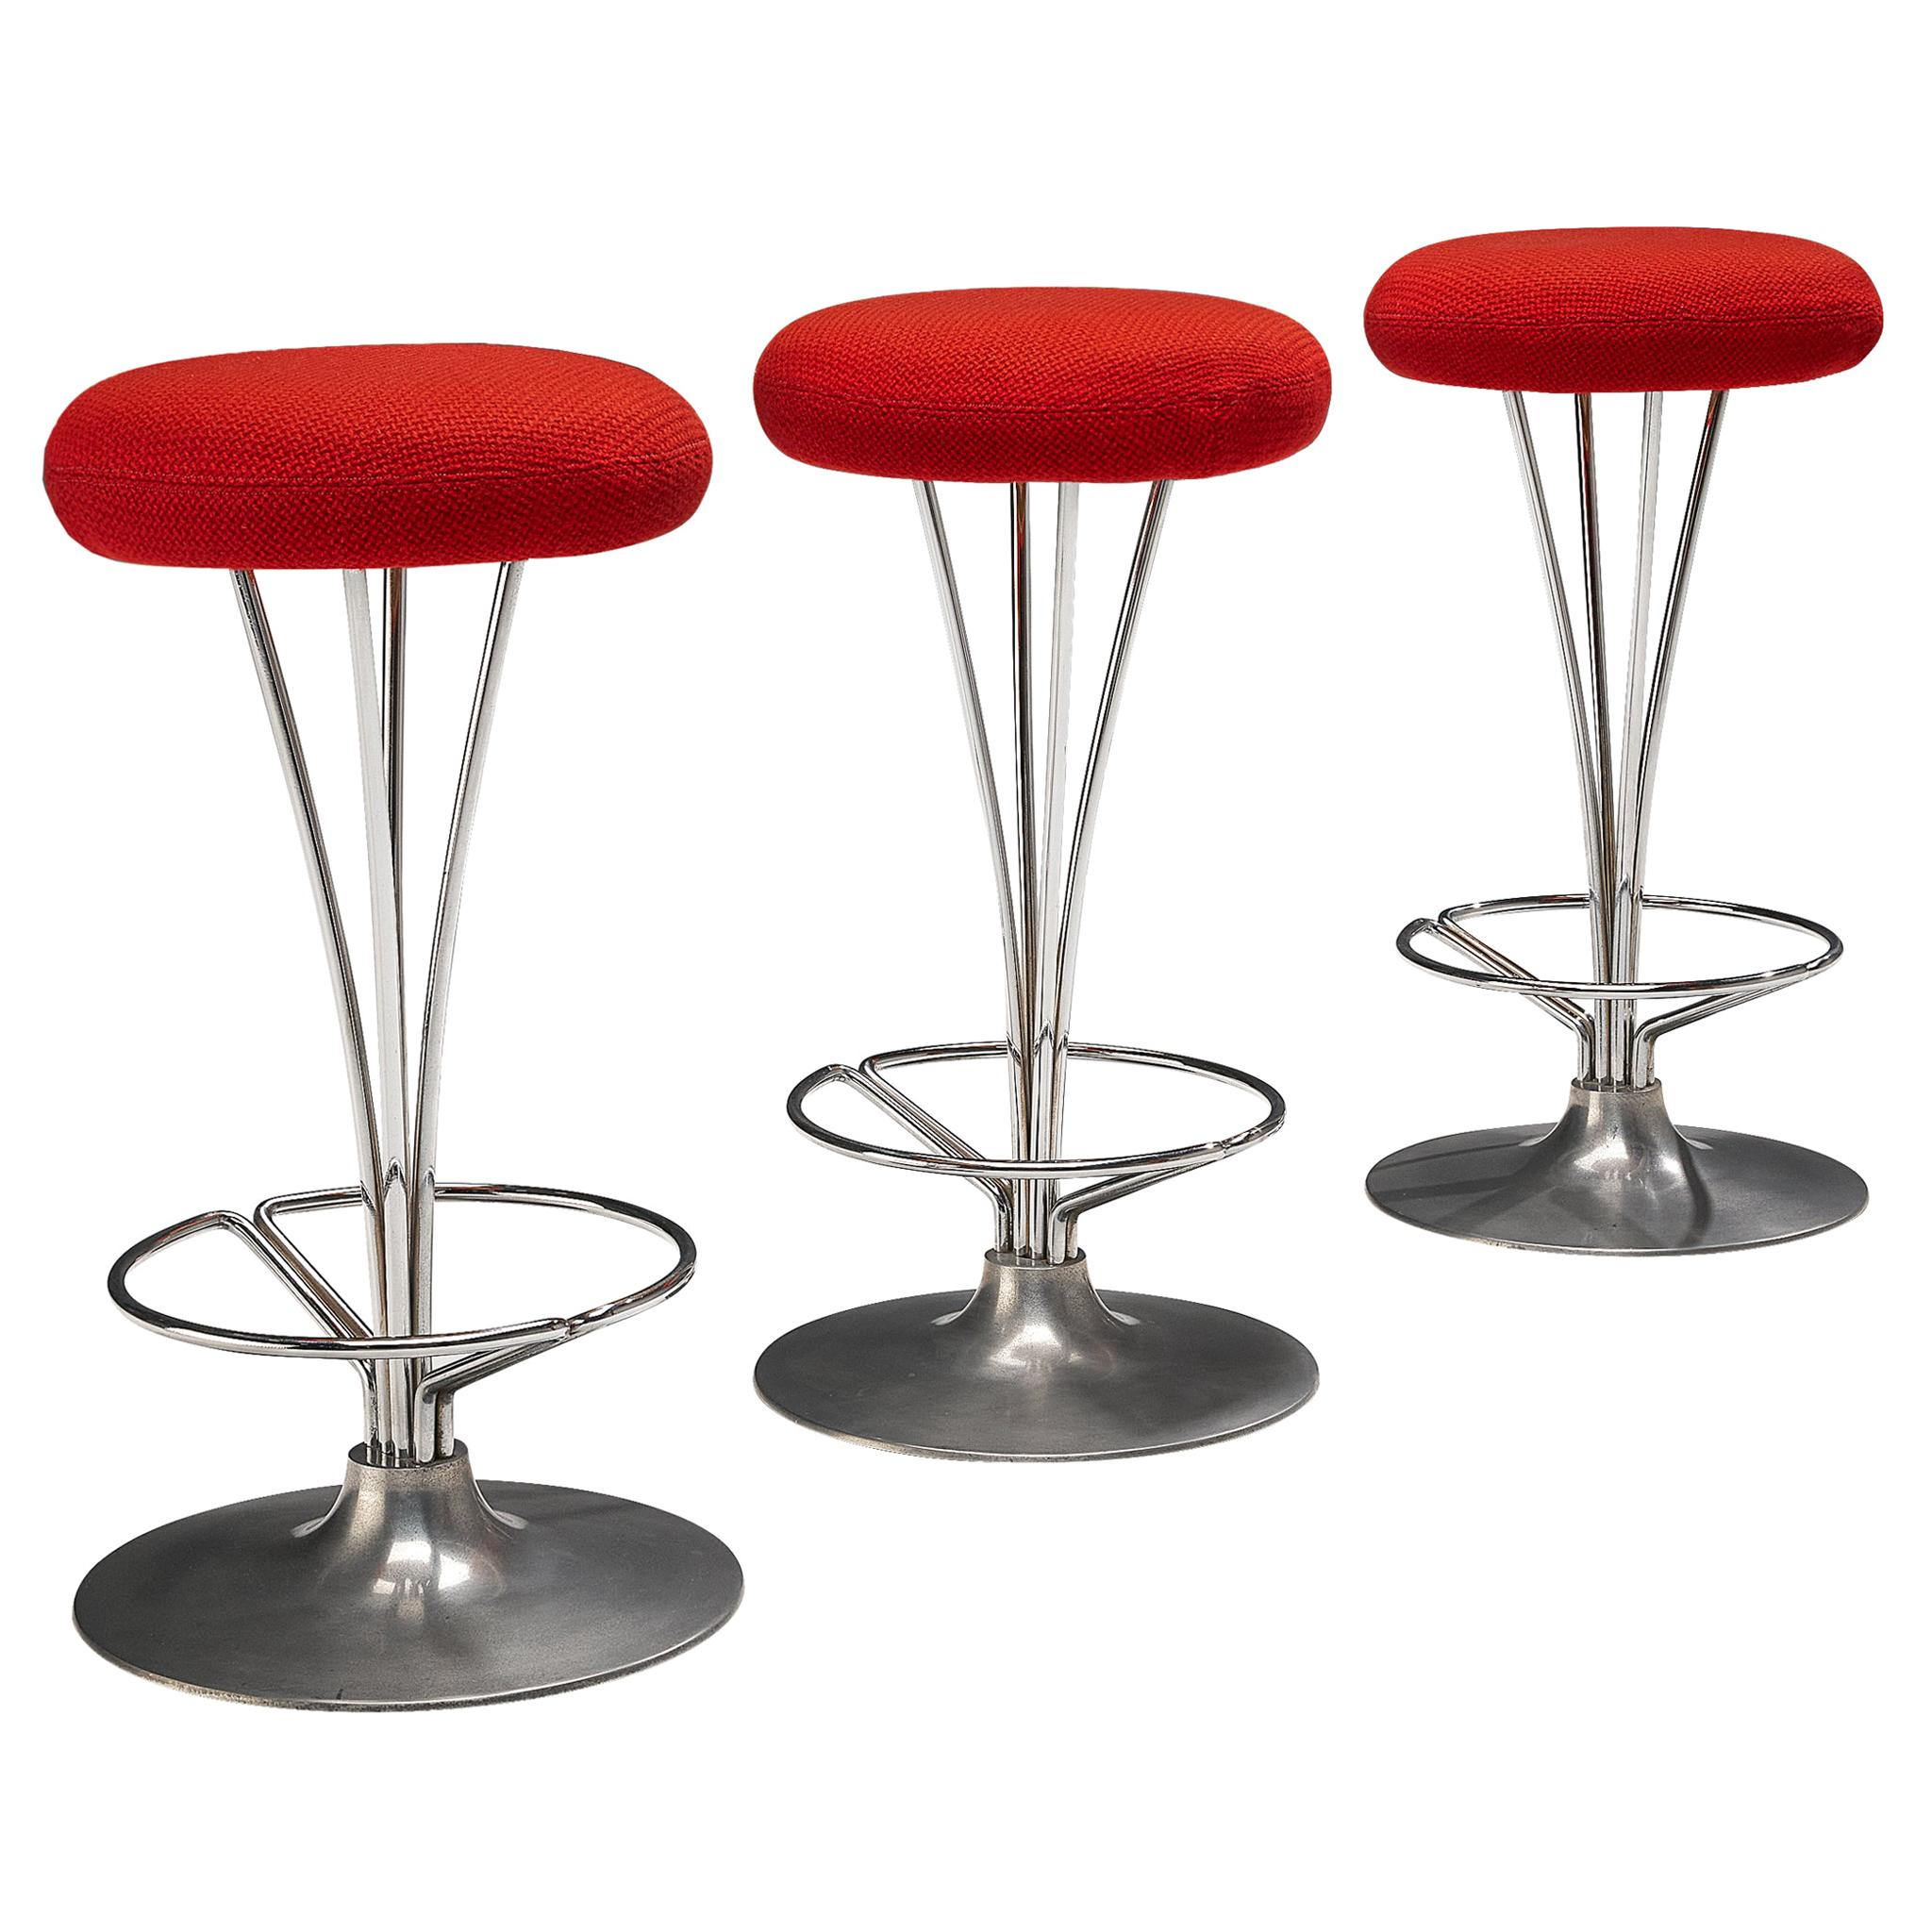 Piet Hein for Fritz Hansen Set of Three Metal Bar Stools with Red Seats